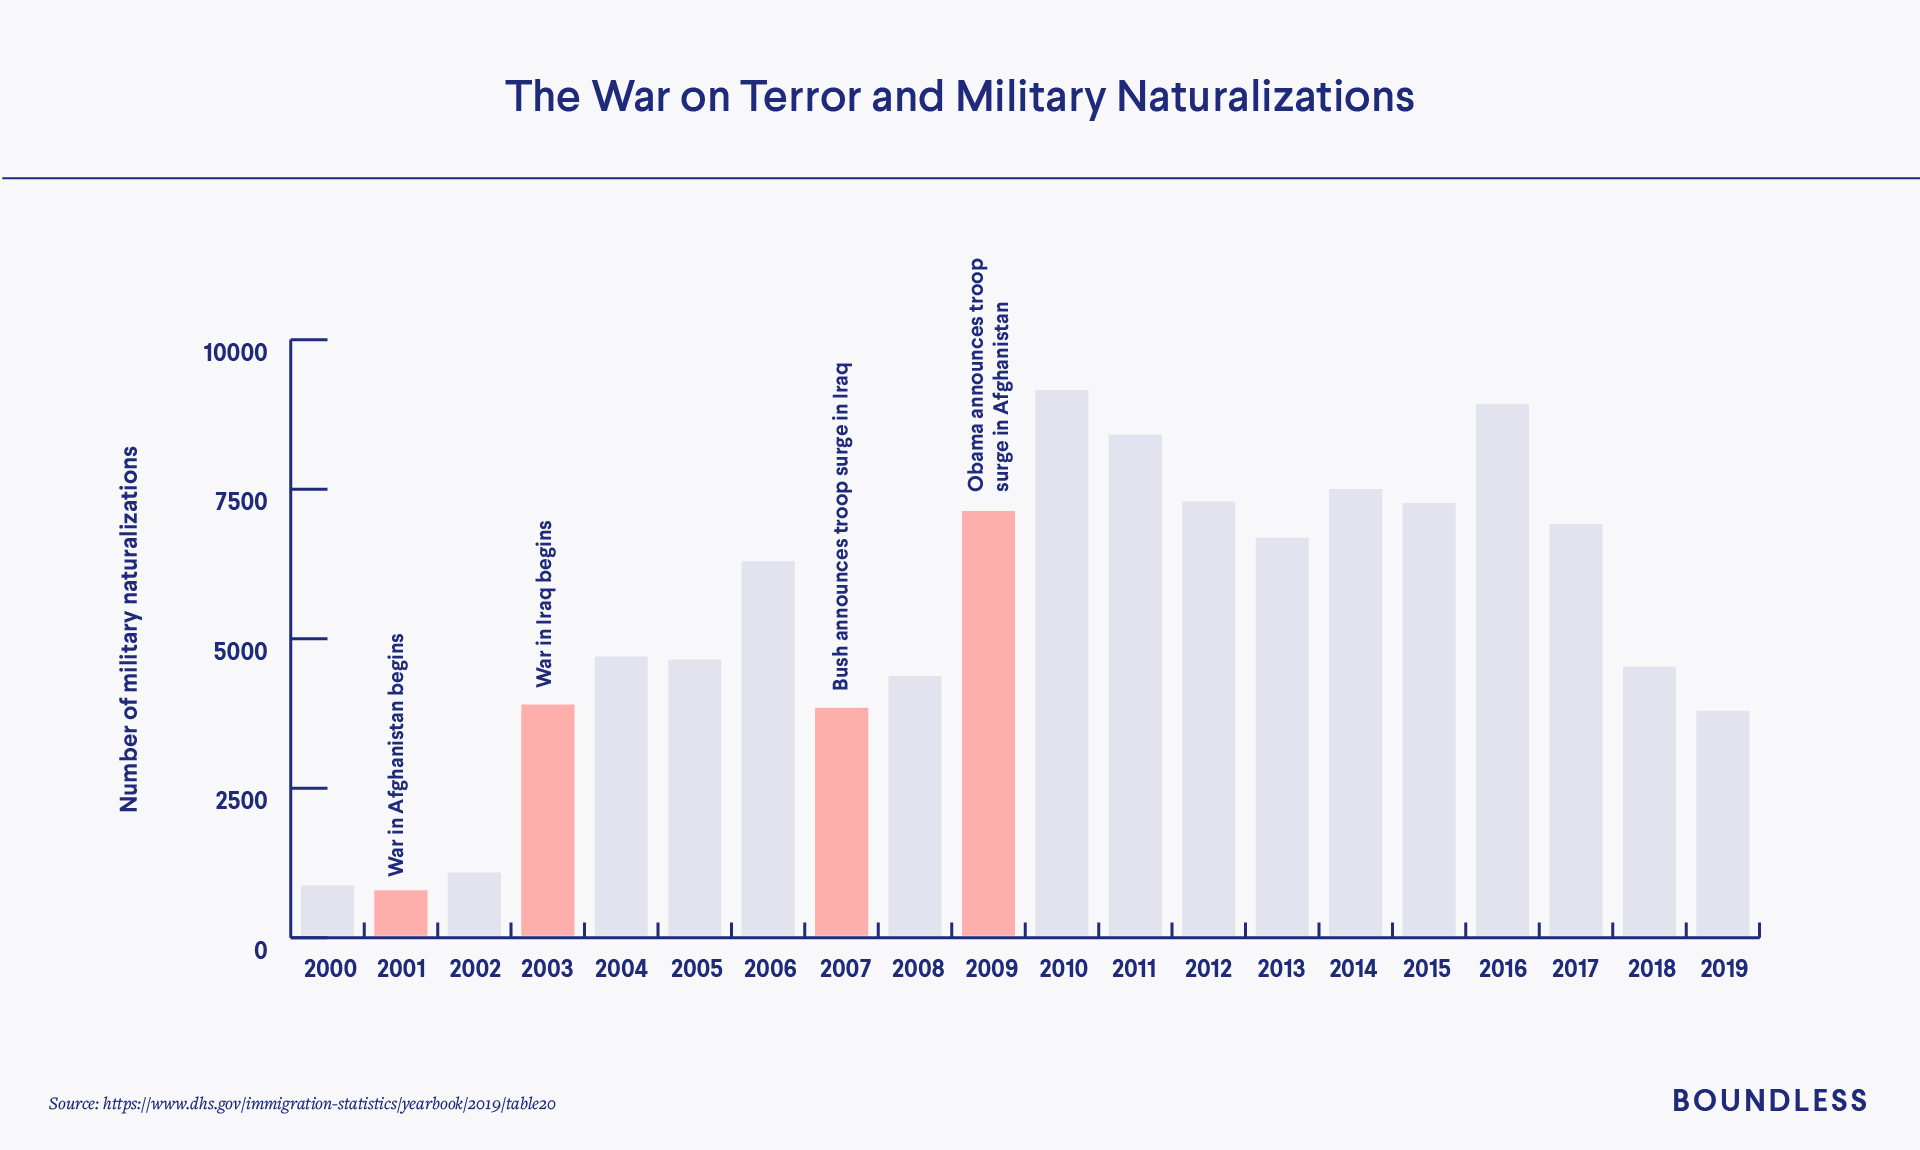 9-1 Effects on military naturalization